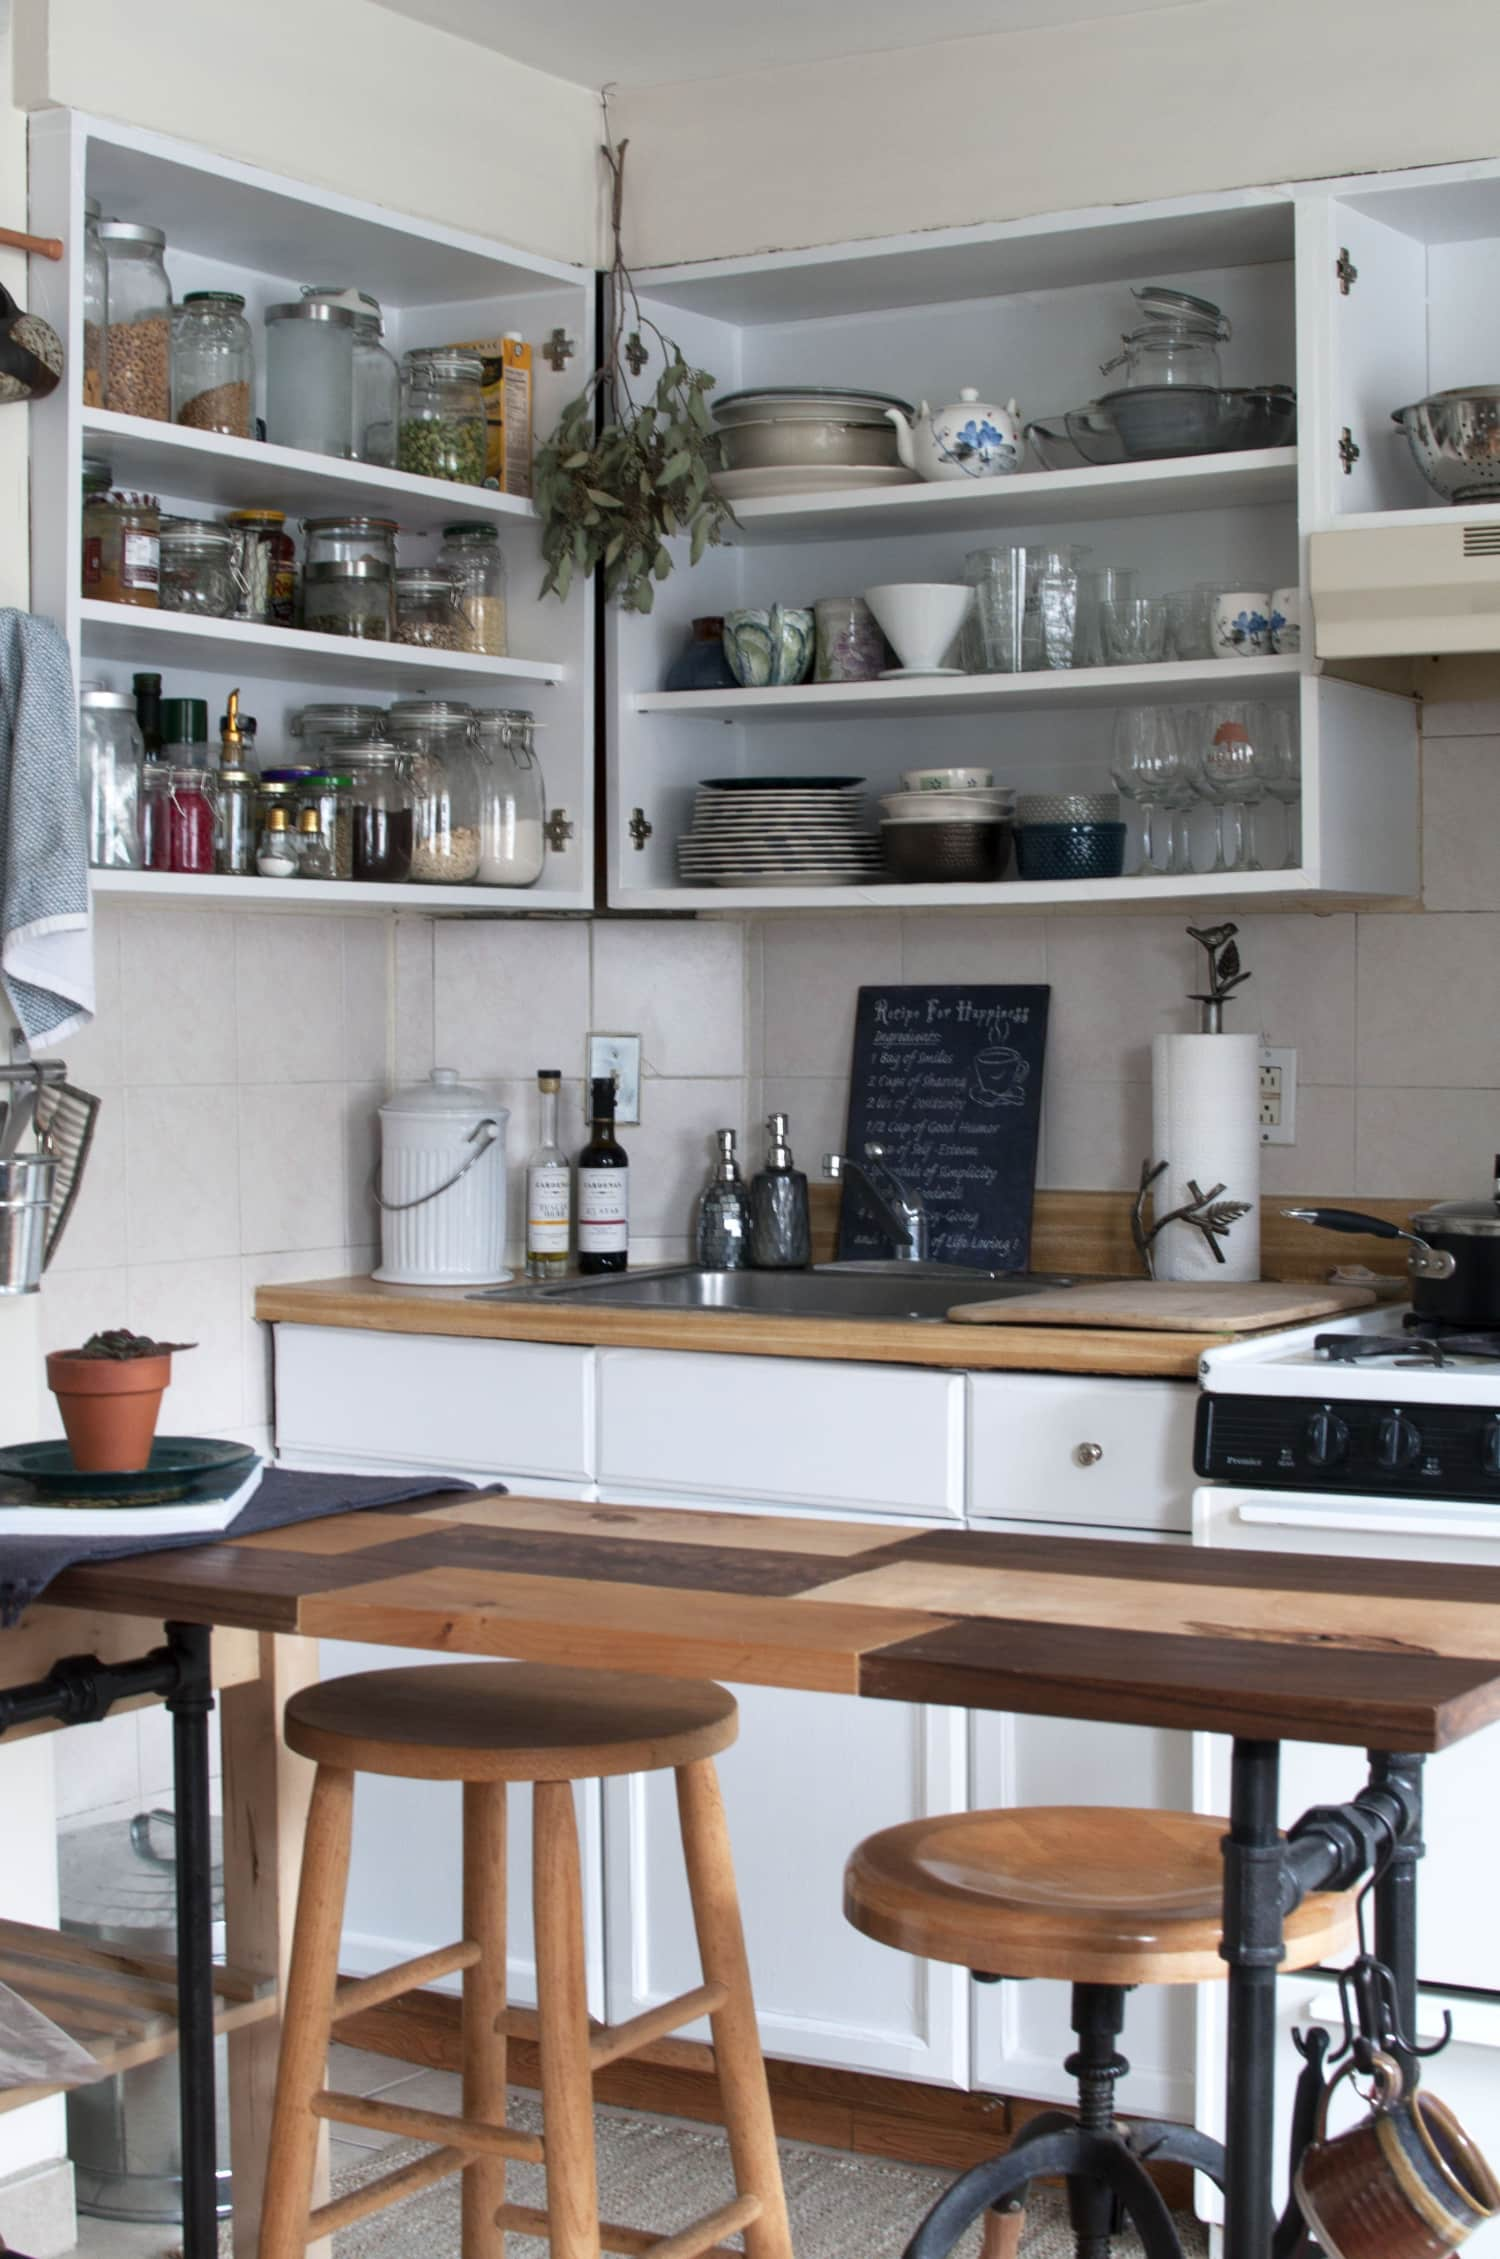 5 Ways to Make Your Ugly Rental Kitchen Look Better Fast